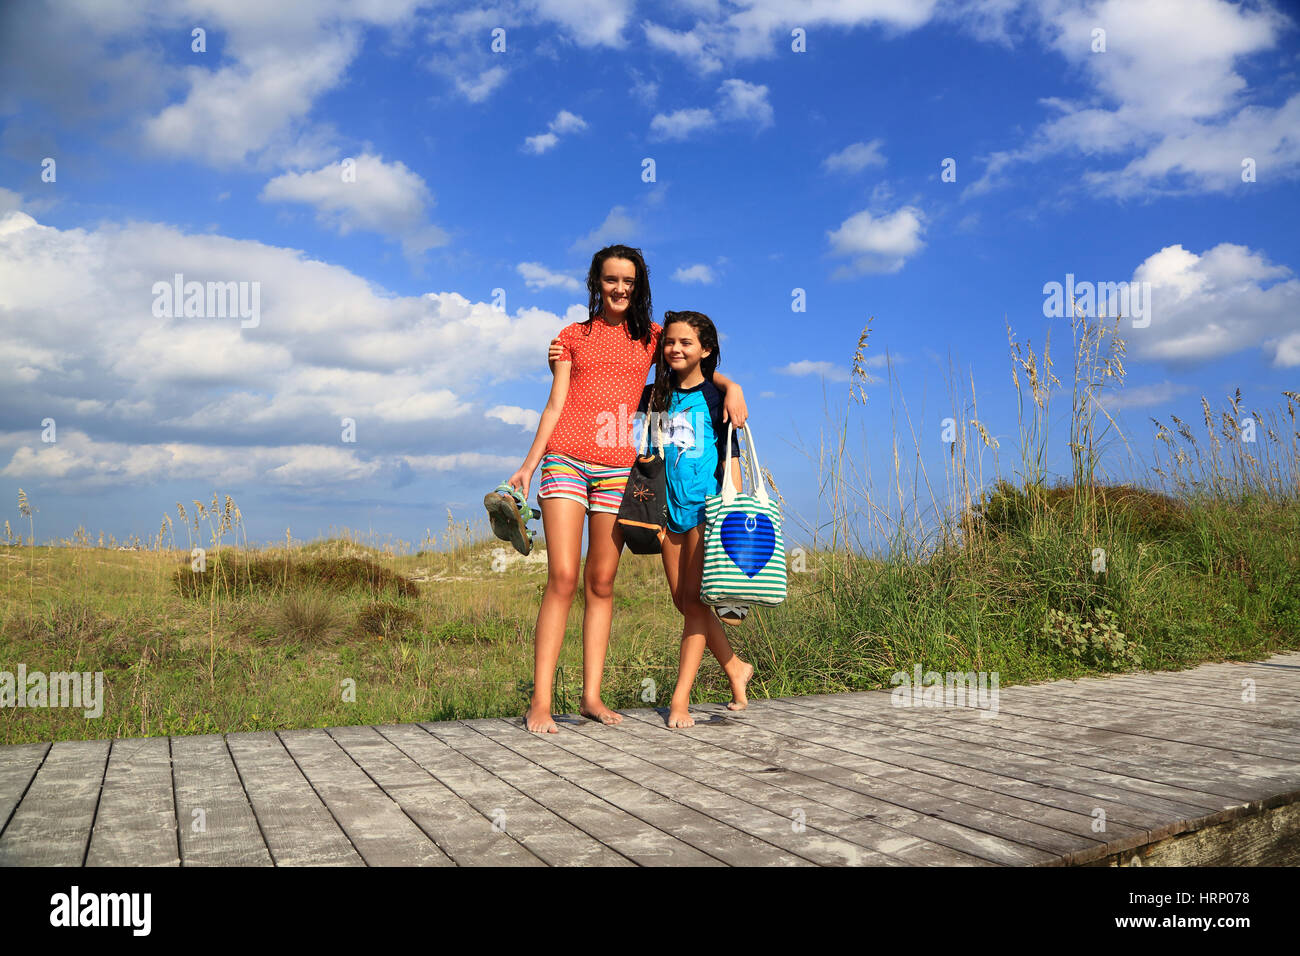 Two brunette girls stand with their arms around each other on a beach boardwalk on the dunes on a sunny day. They - Stock Image